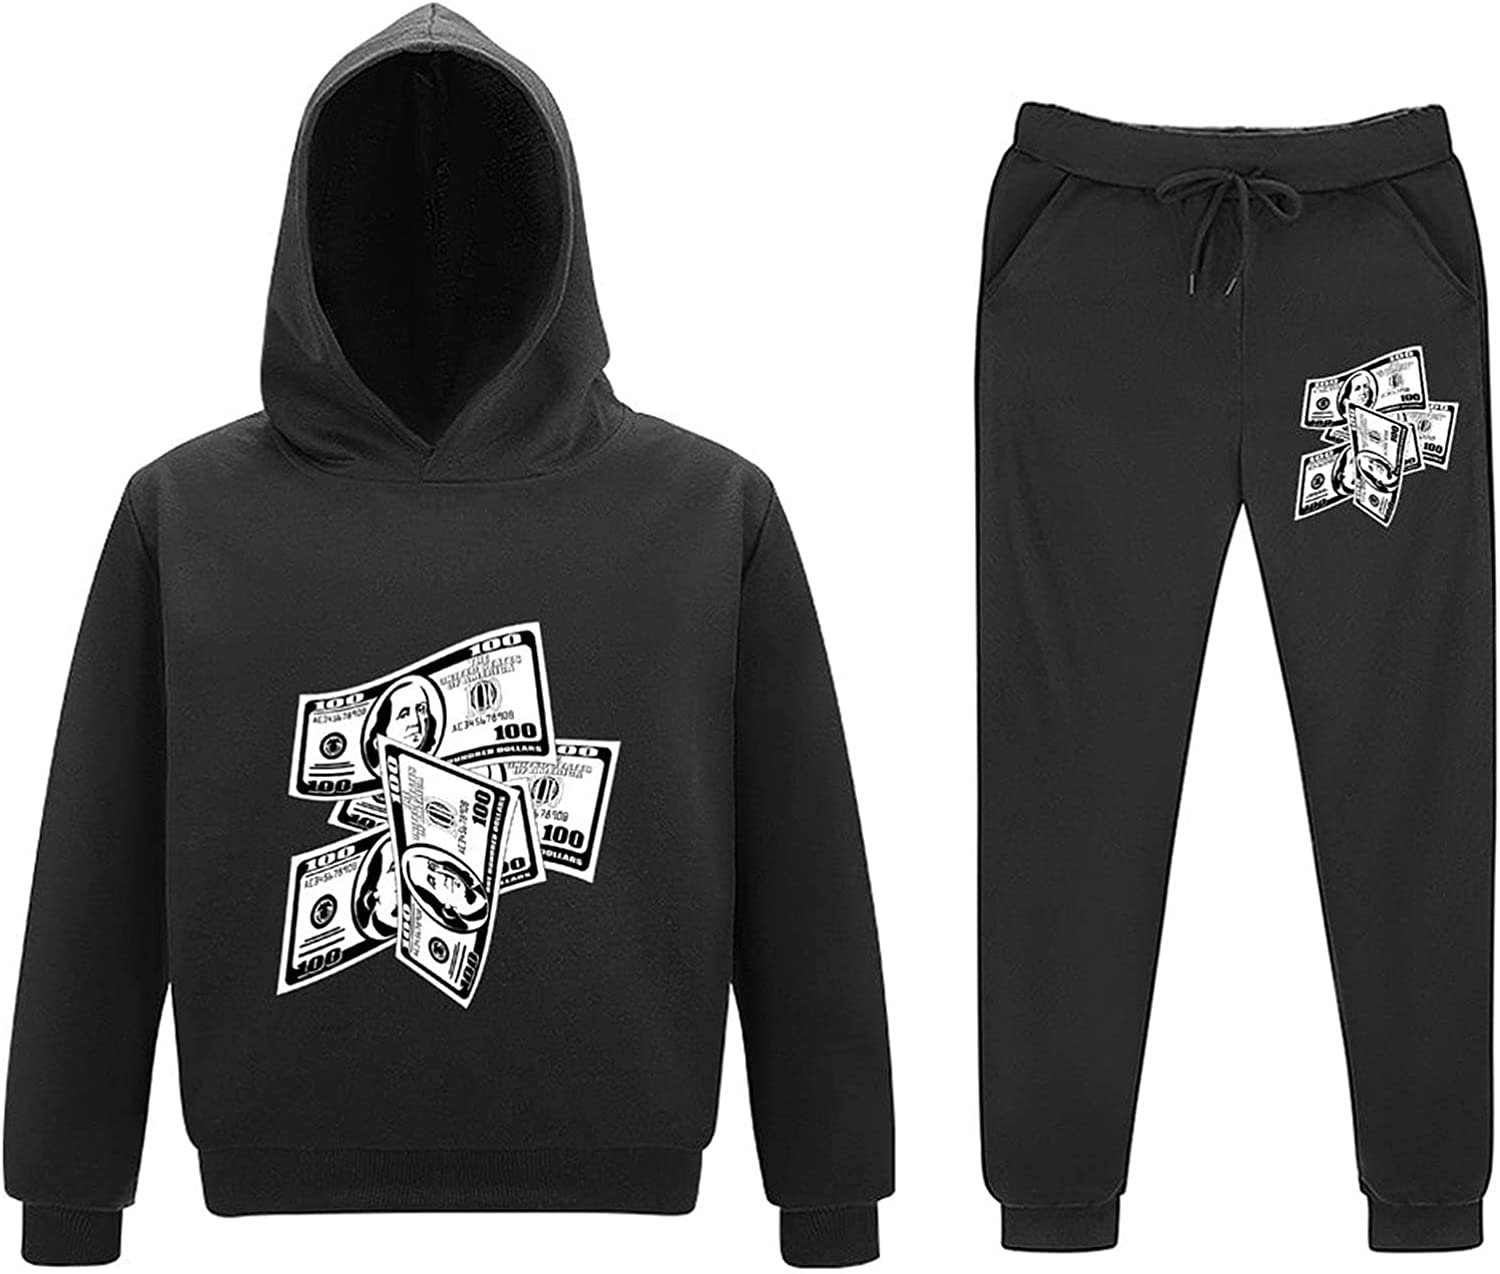 BanknoteTracksuit Sets Youth Hoodie And Sweatpants Suit Outfit Fashion Set For Boys Girls(Two-piece suit)